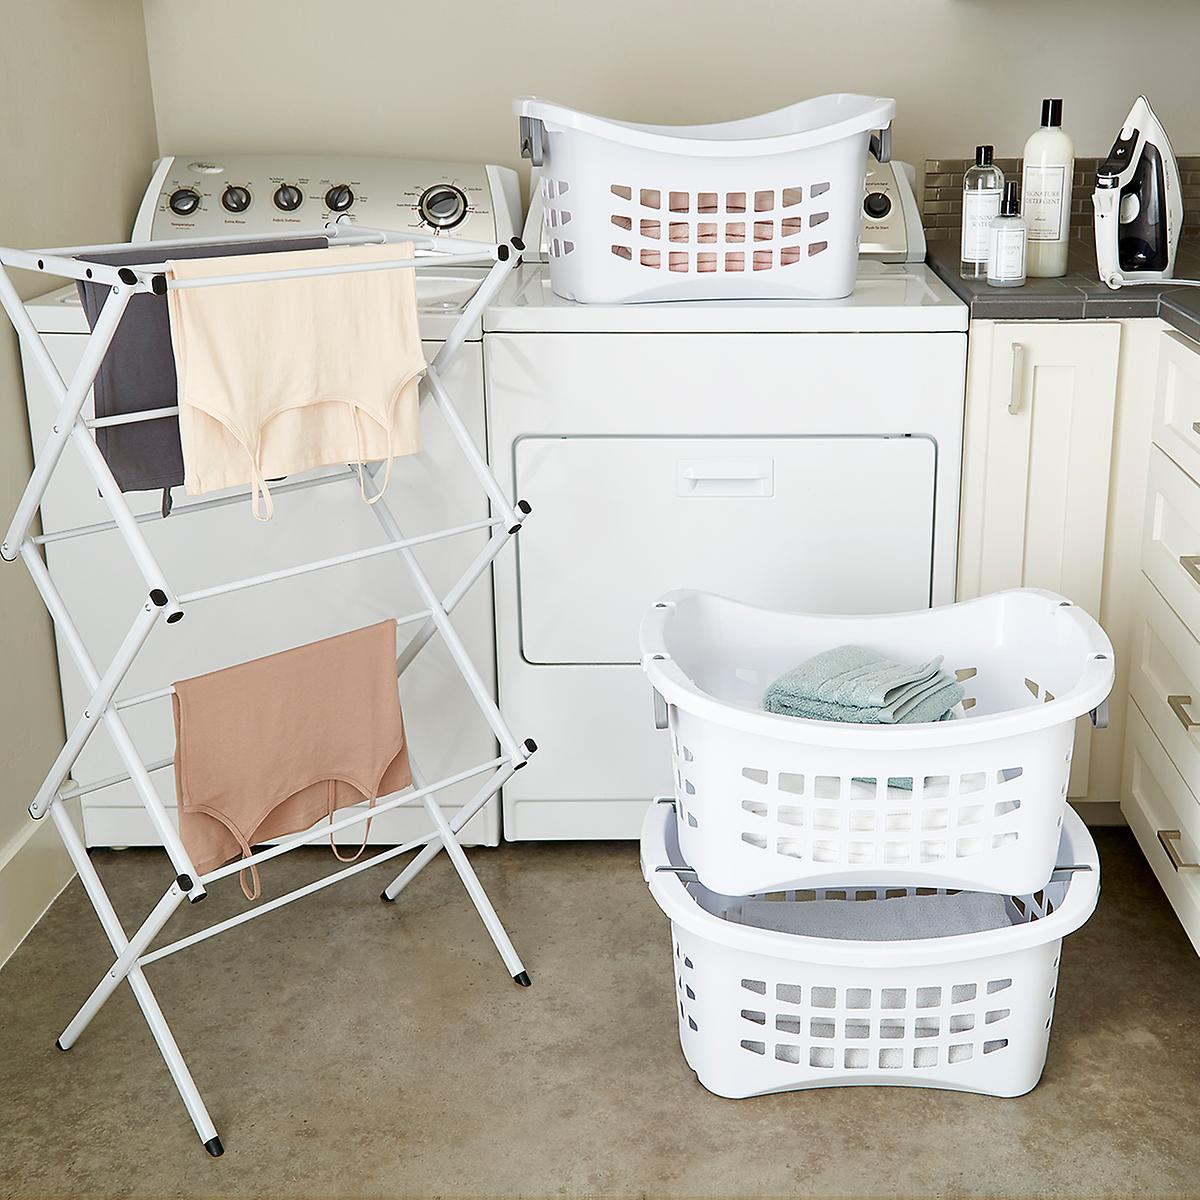 Attractive White Stackable Laundry Basket with Grey Handles | The Container Store GA99